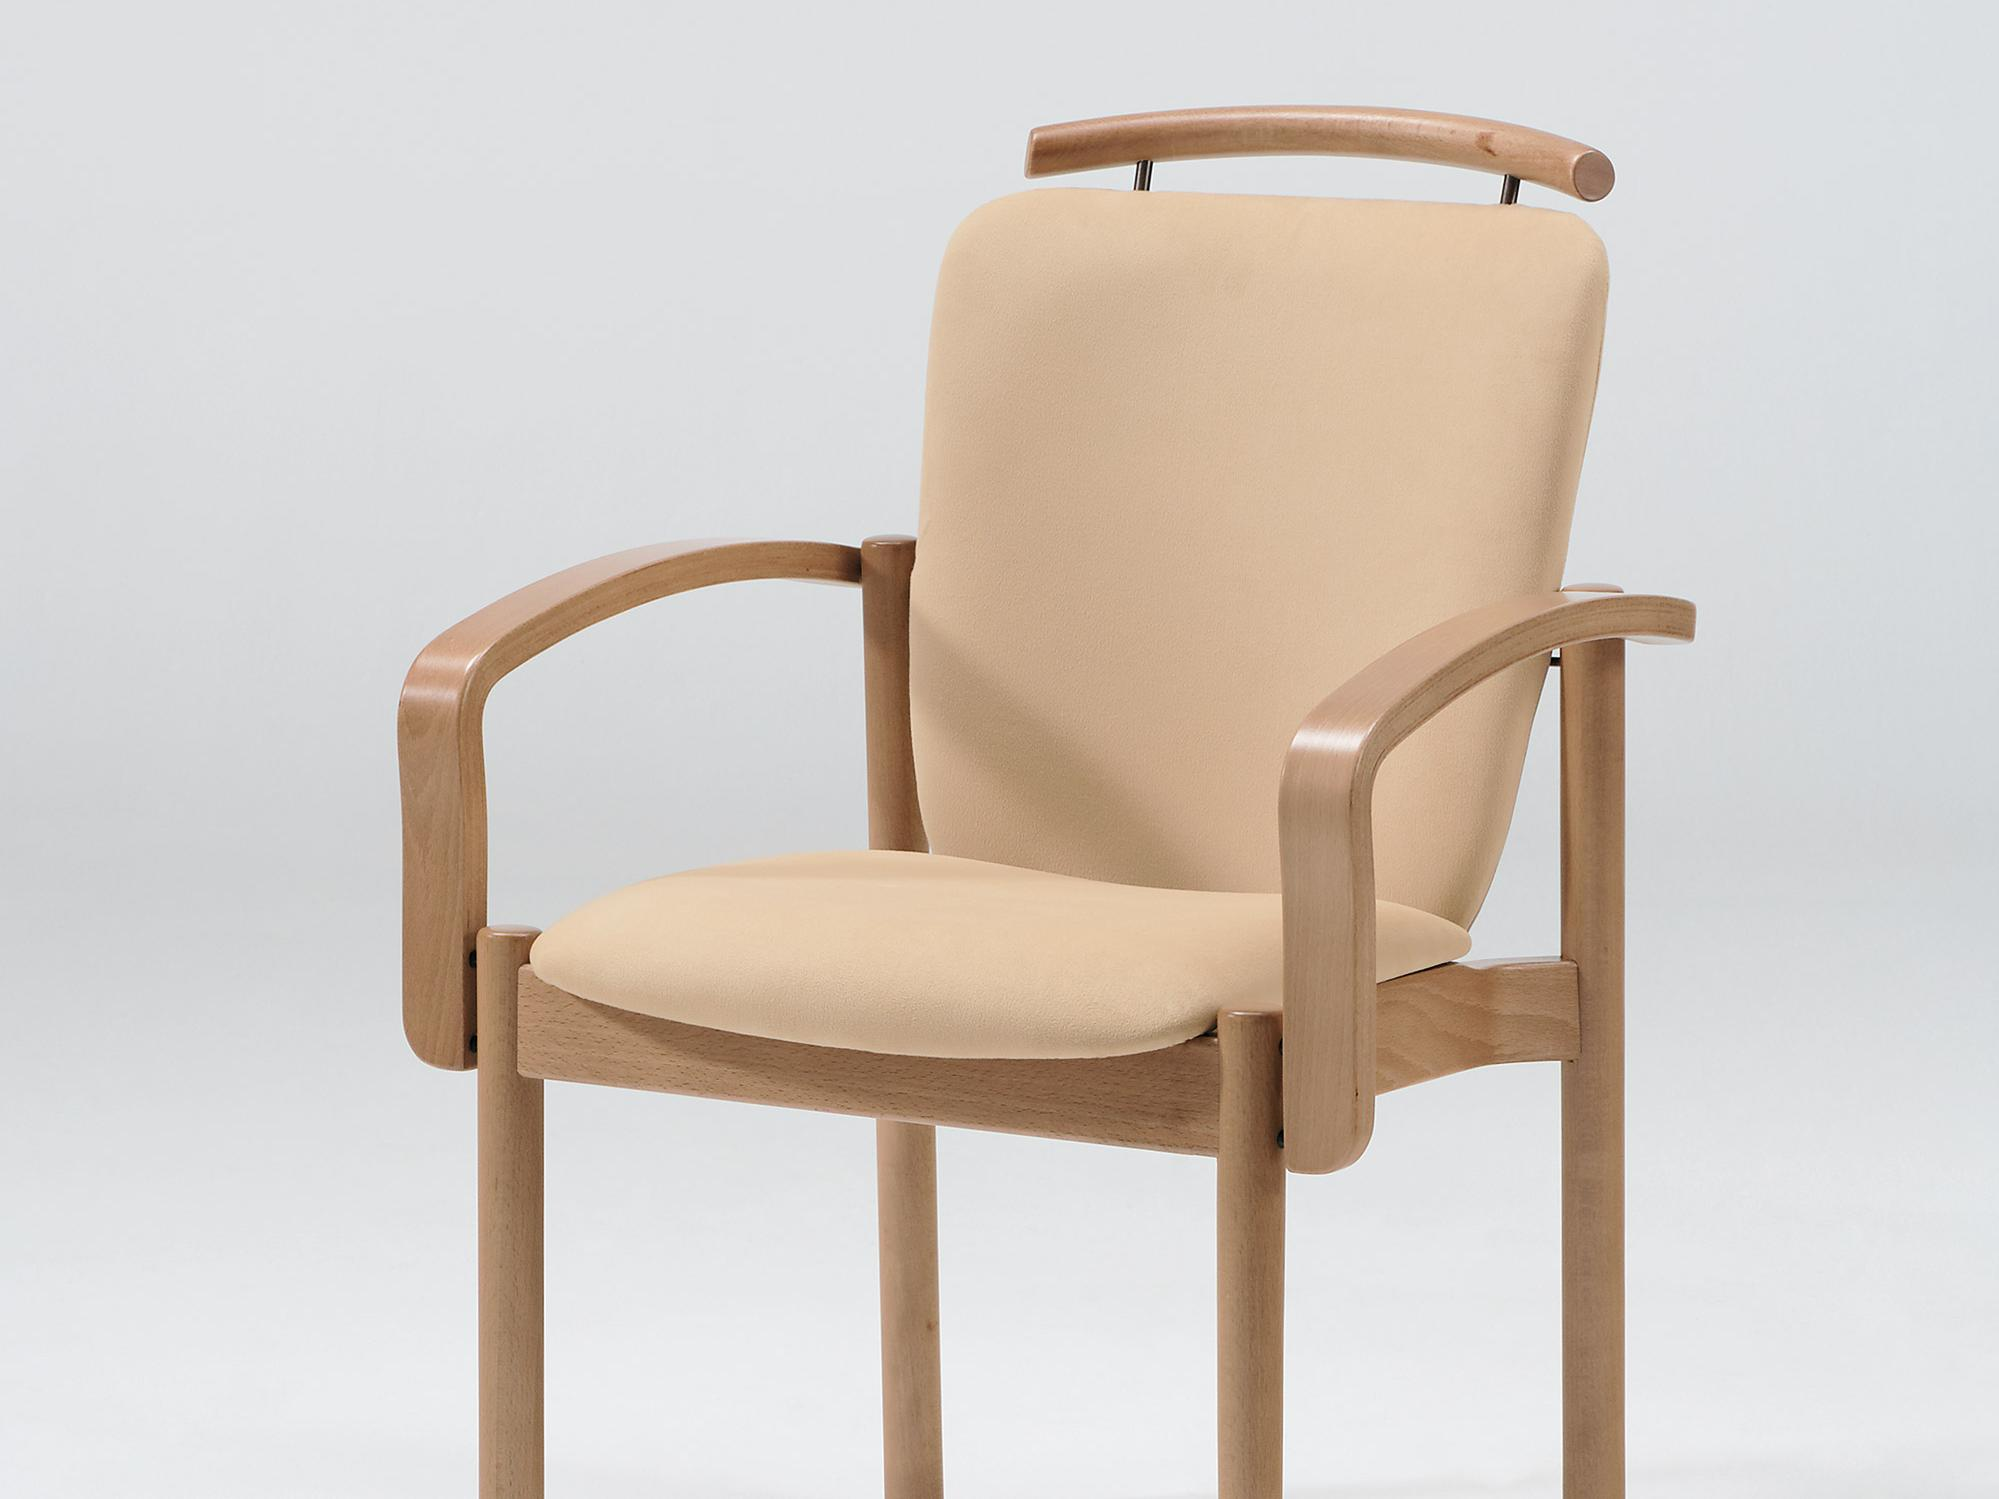 The Optimo model as a stacking armchair with handle